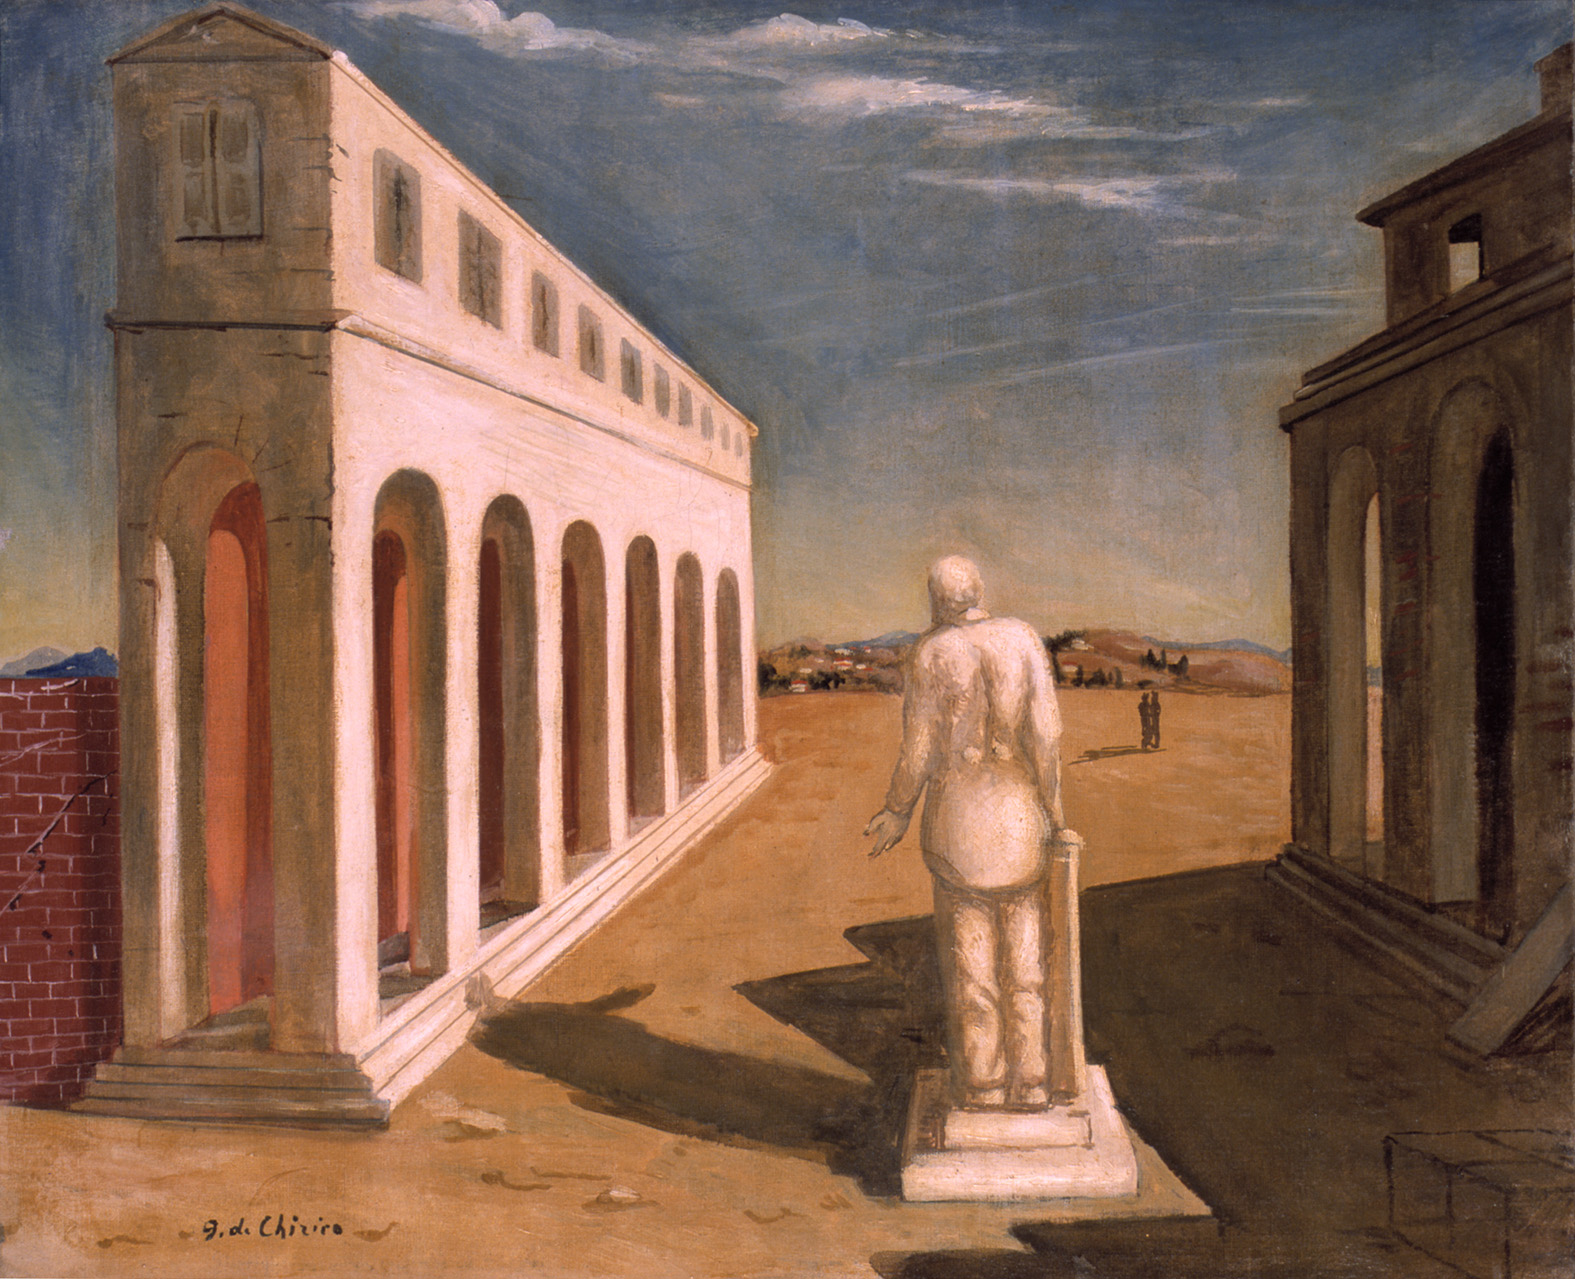 De-Chirico-Piazza-insight-coaching-art